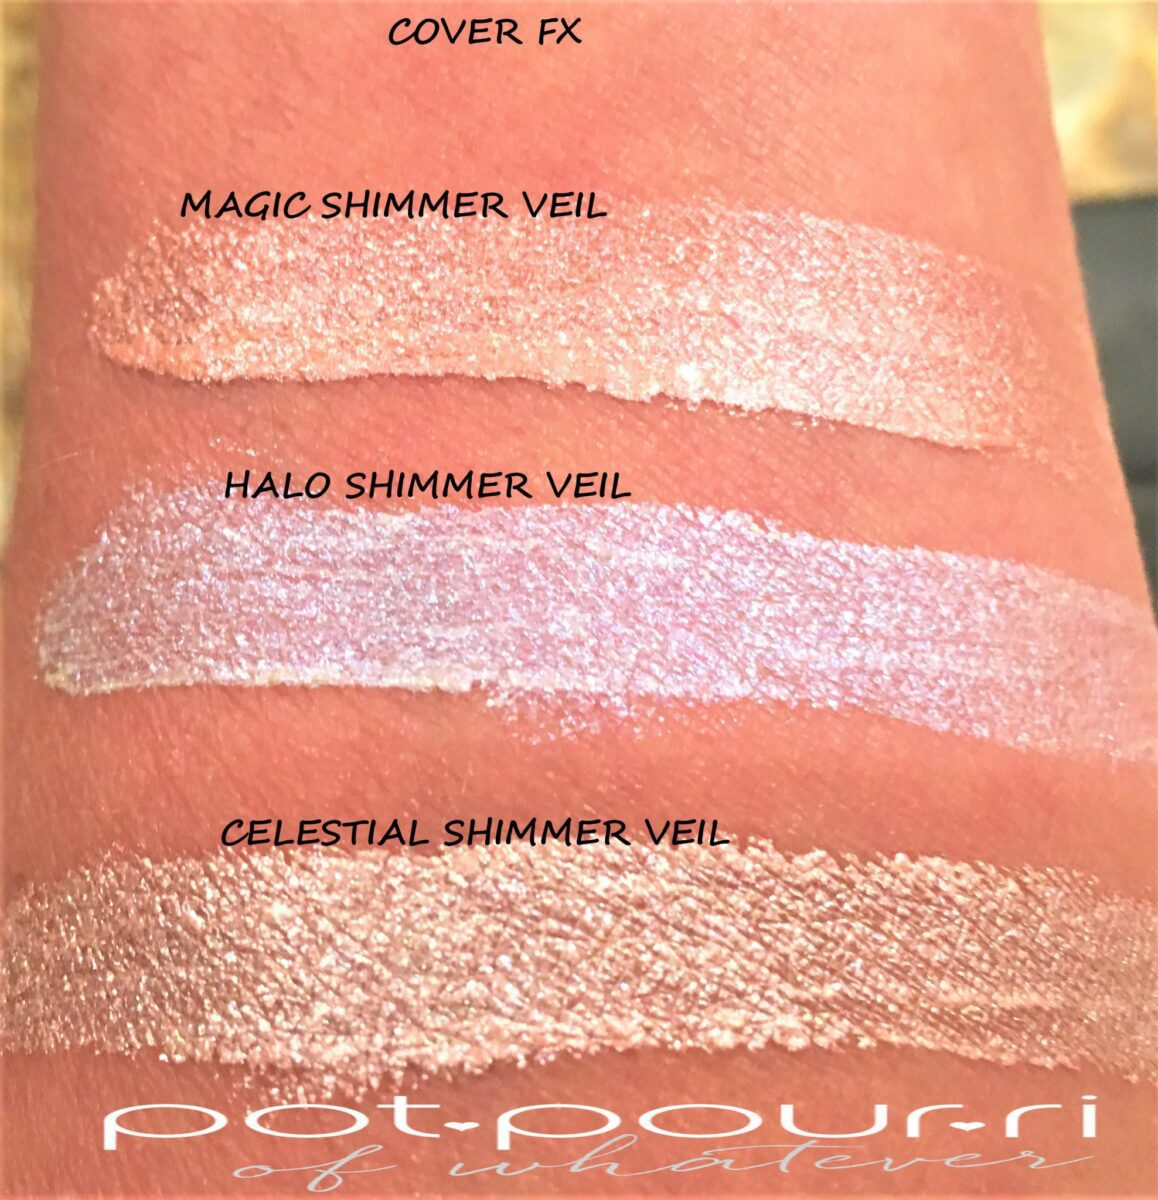 COVER FX VEIL SWATCHES MAGIC, HALO, CELESTIAL